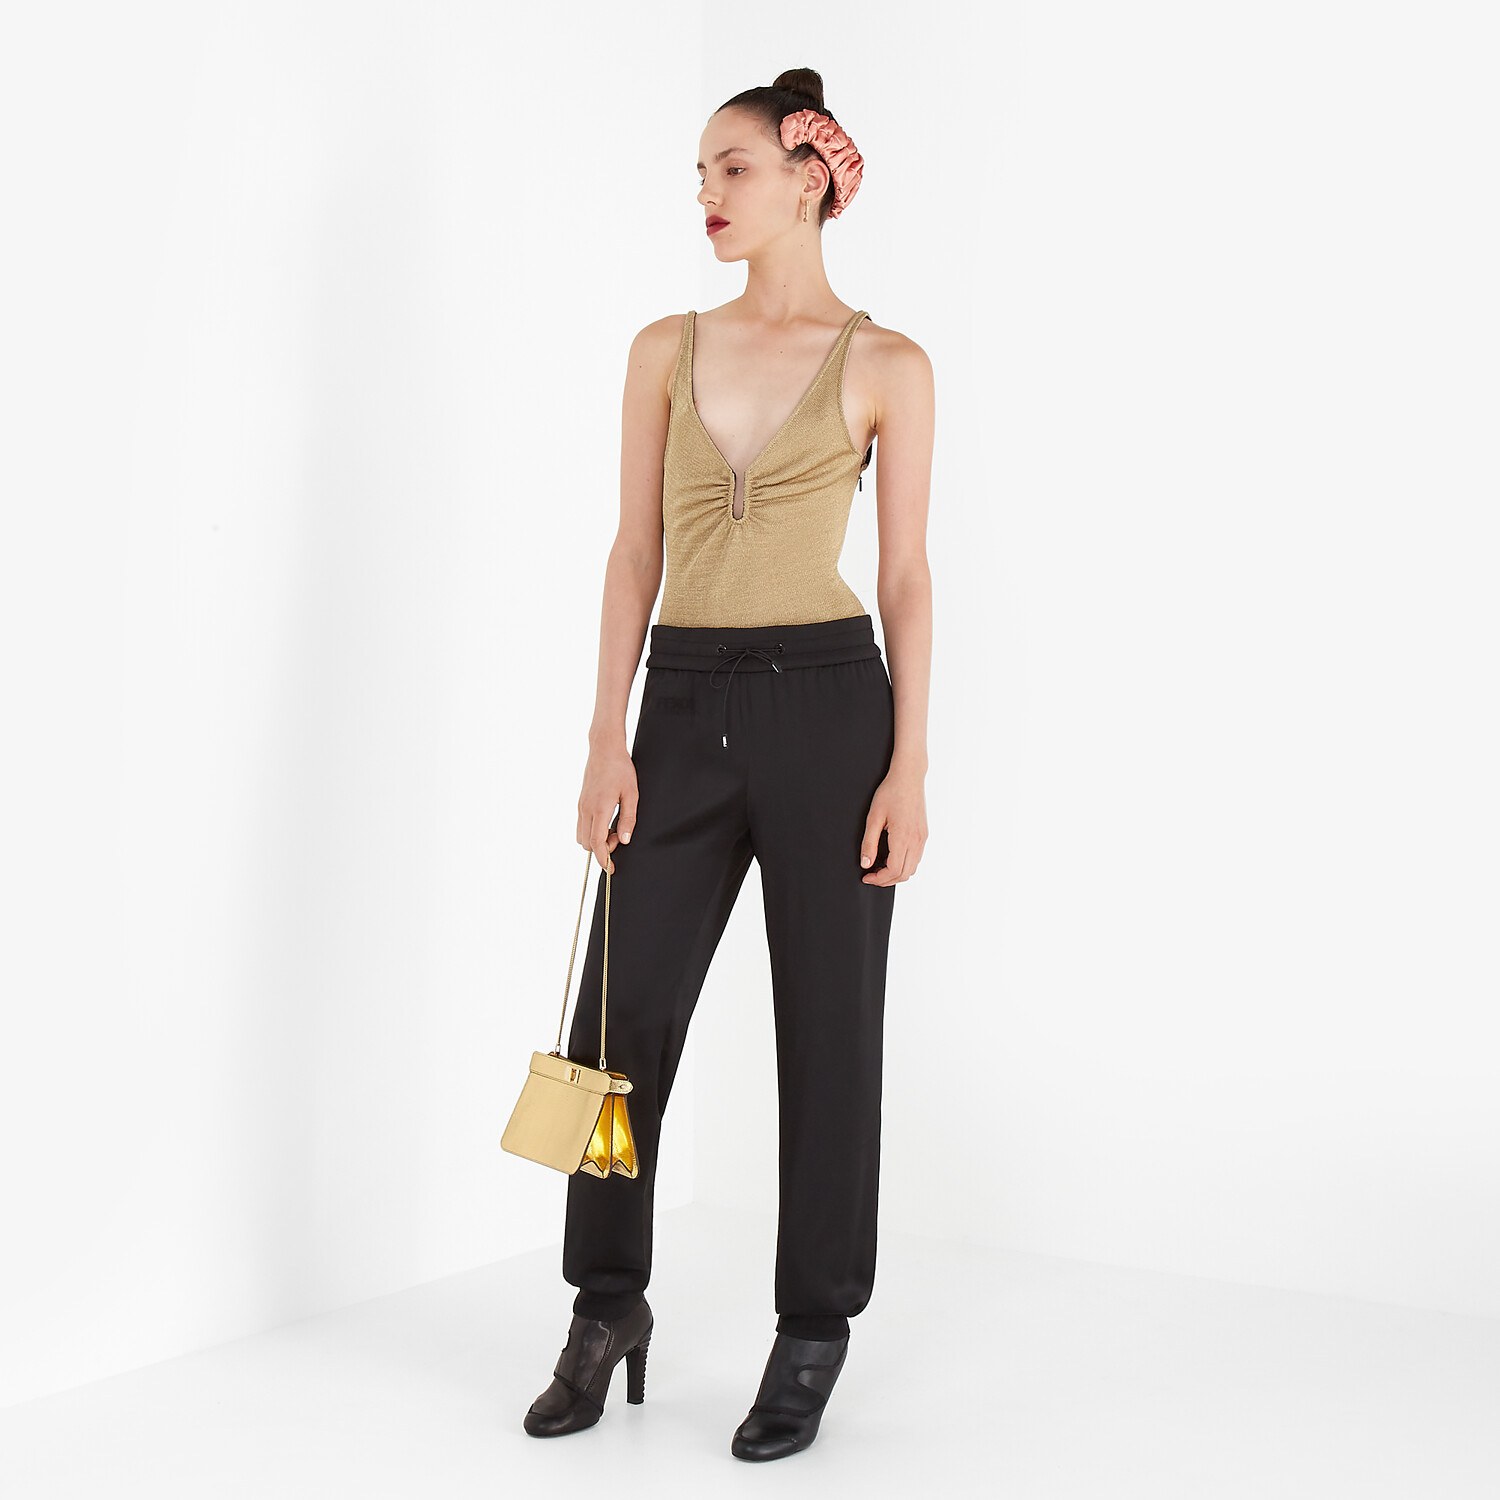 FENDI TOP - Gold Lurex top - view 4 detail